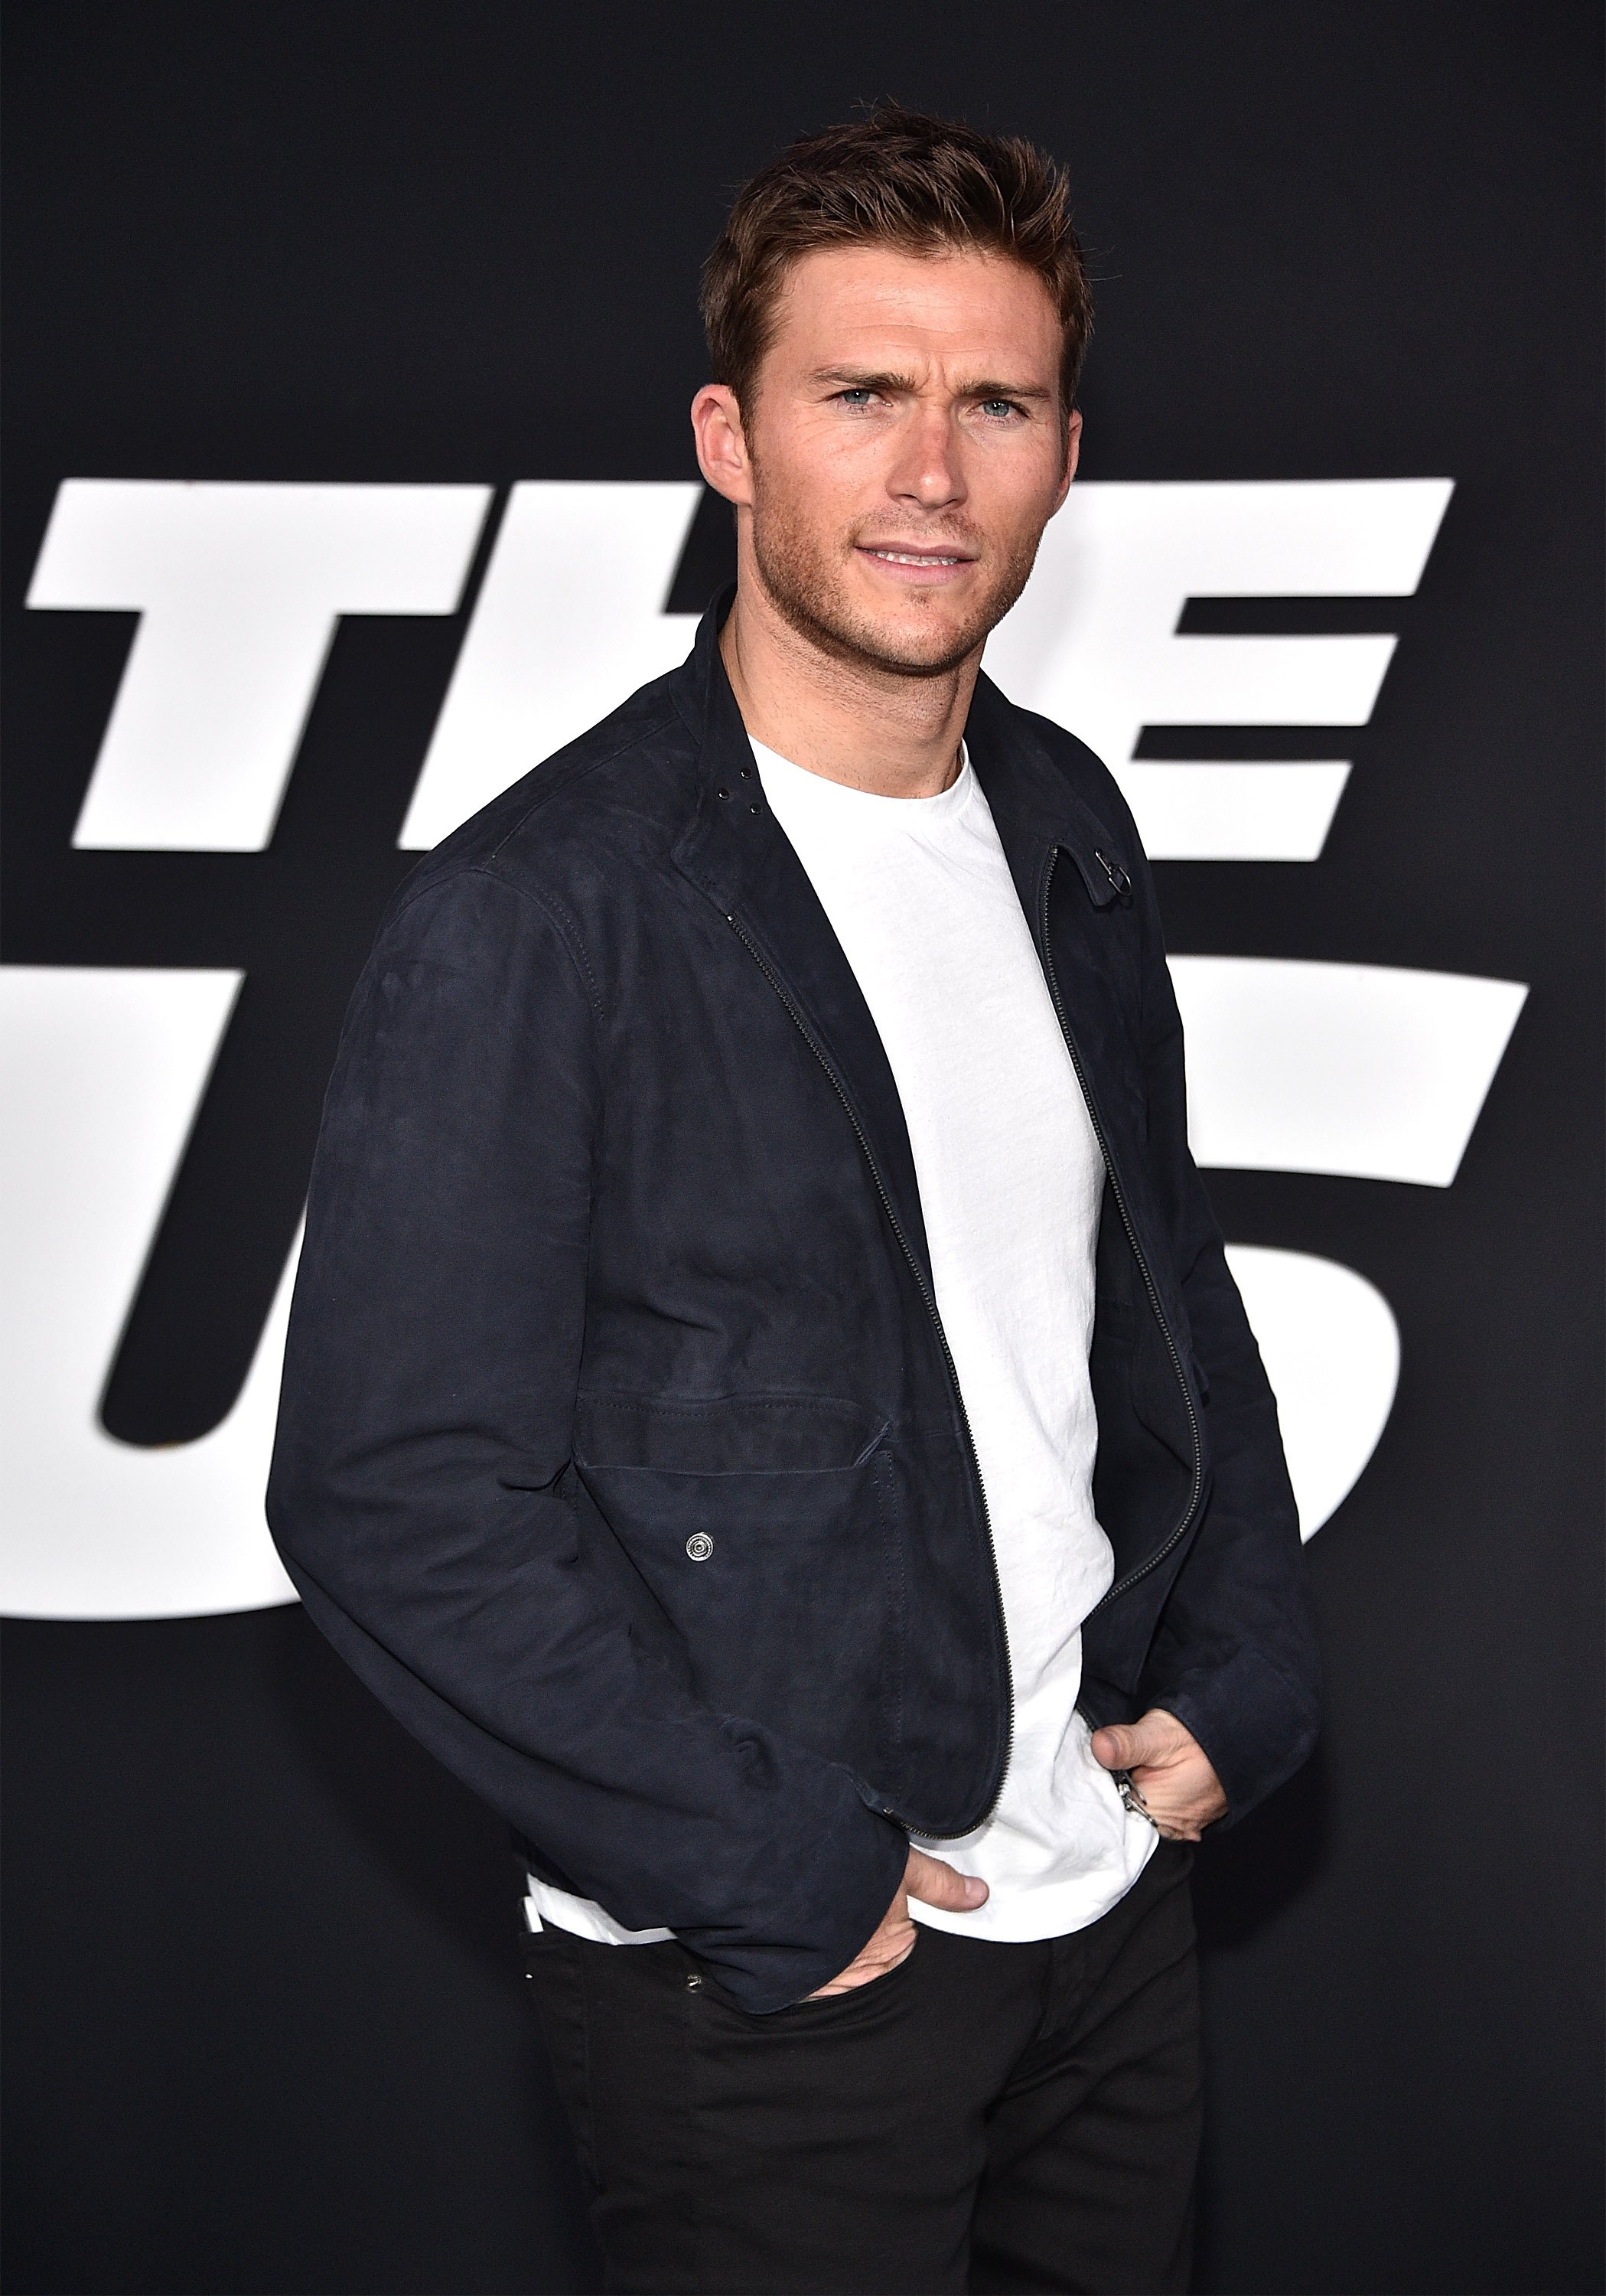 """Scott Eastwood attends the premiere of """"The Fate of the Furious"""" in New York City on April 8, 2017 